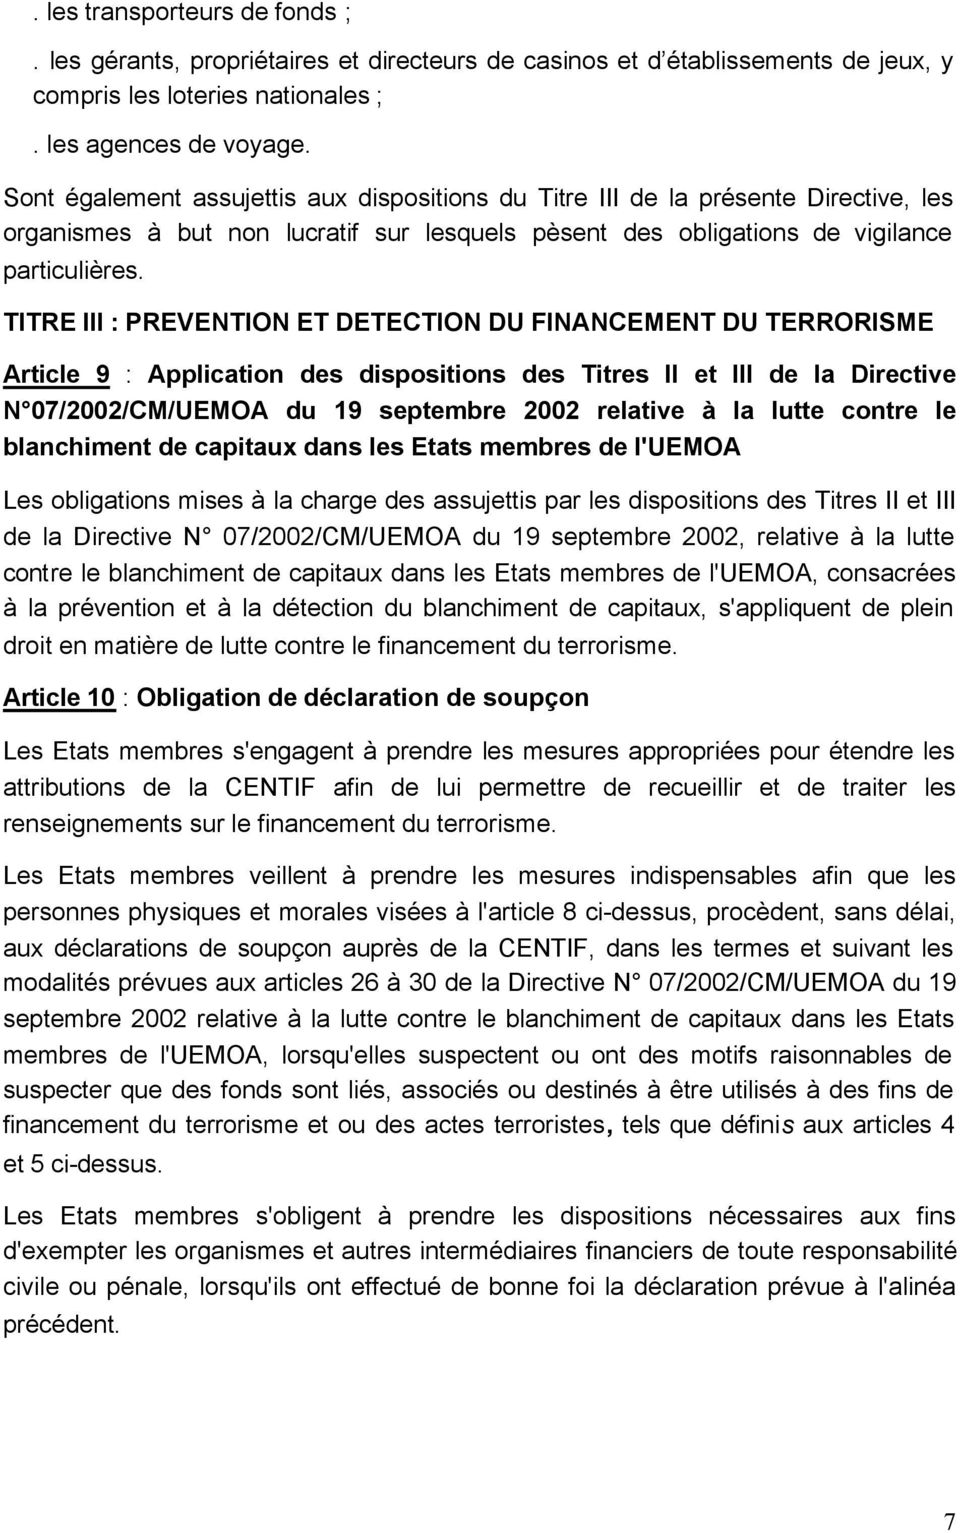 TITRE III : PREVENTION ET DETECTION DU FINANCEMENT DU TERRORISME Article 9 : Application des dispositions des Titres II et III de la Directive N 07/2002/CM/UEMOA du 19 septembre 2002 relative à la